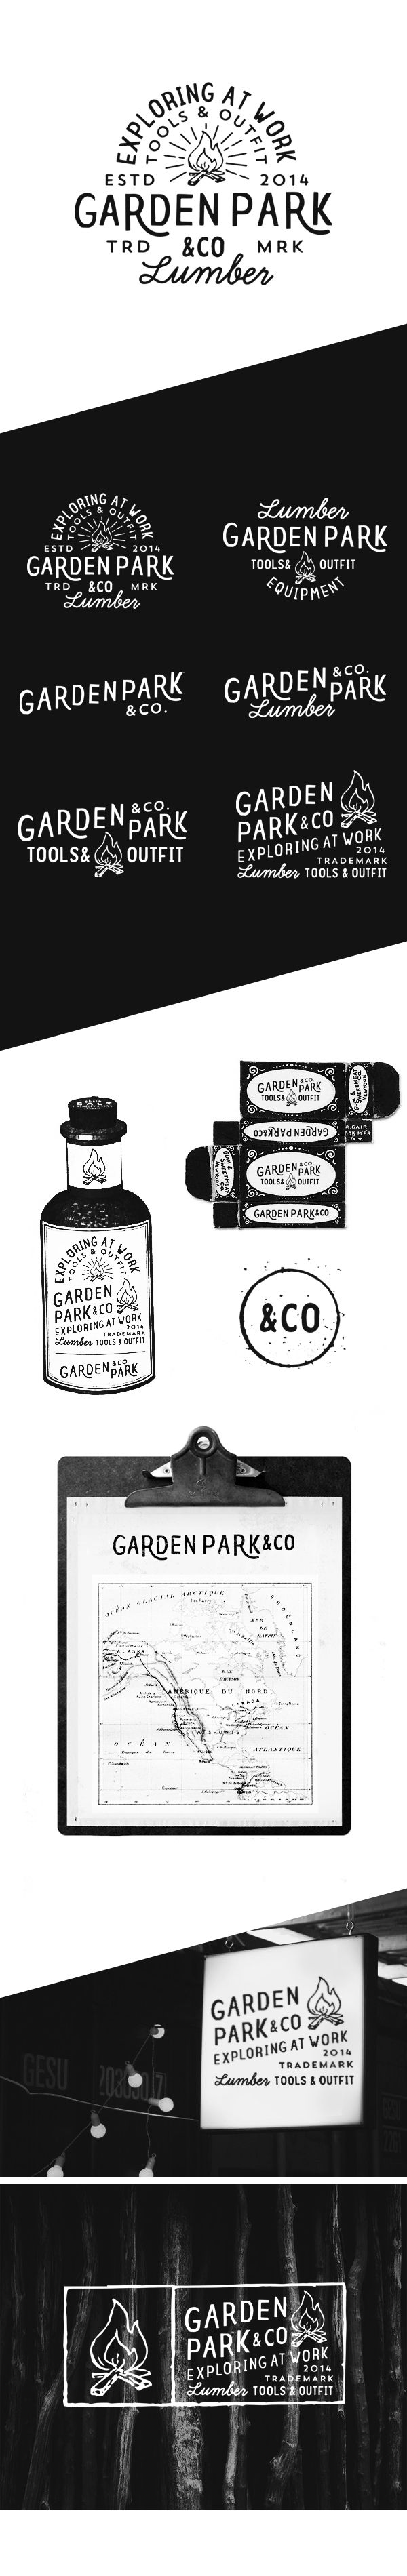 Garden Park & Co on Branding Served